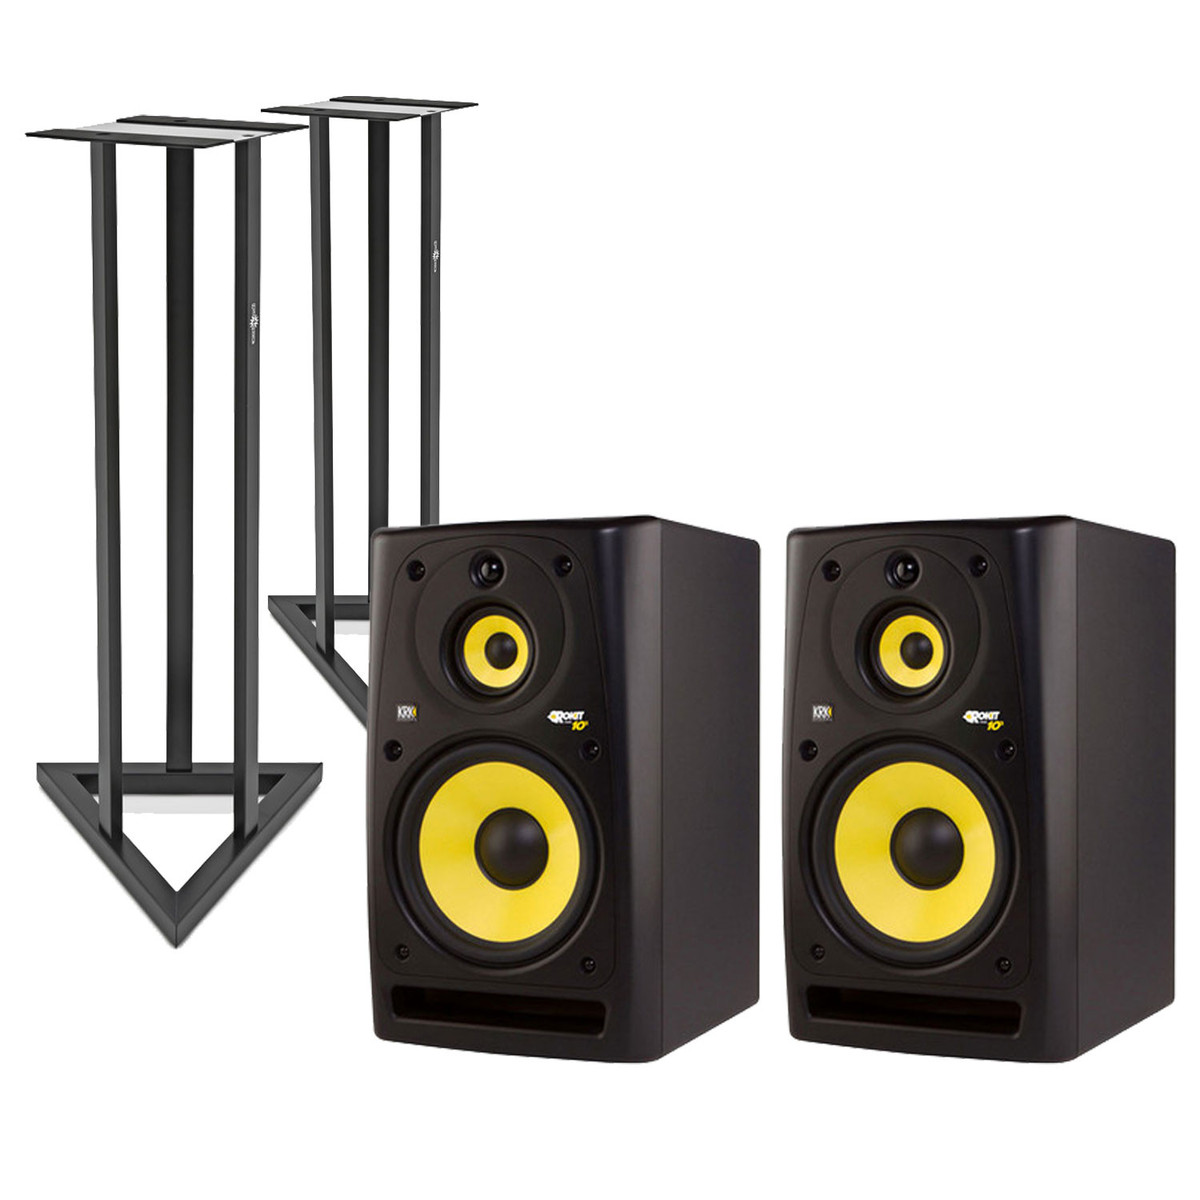 KRK Rokit RP10-3 Full Range Active Studio Monitors, Pair